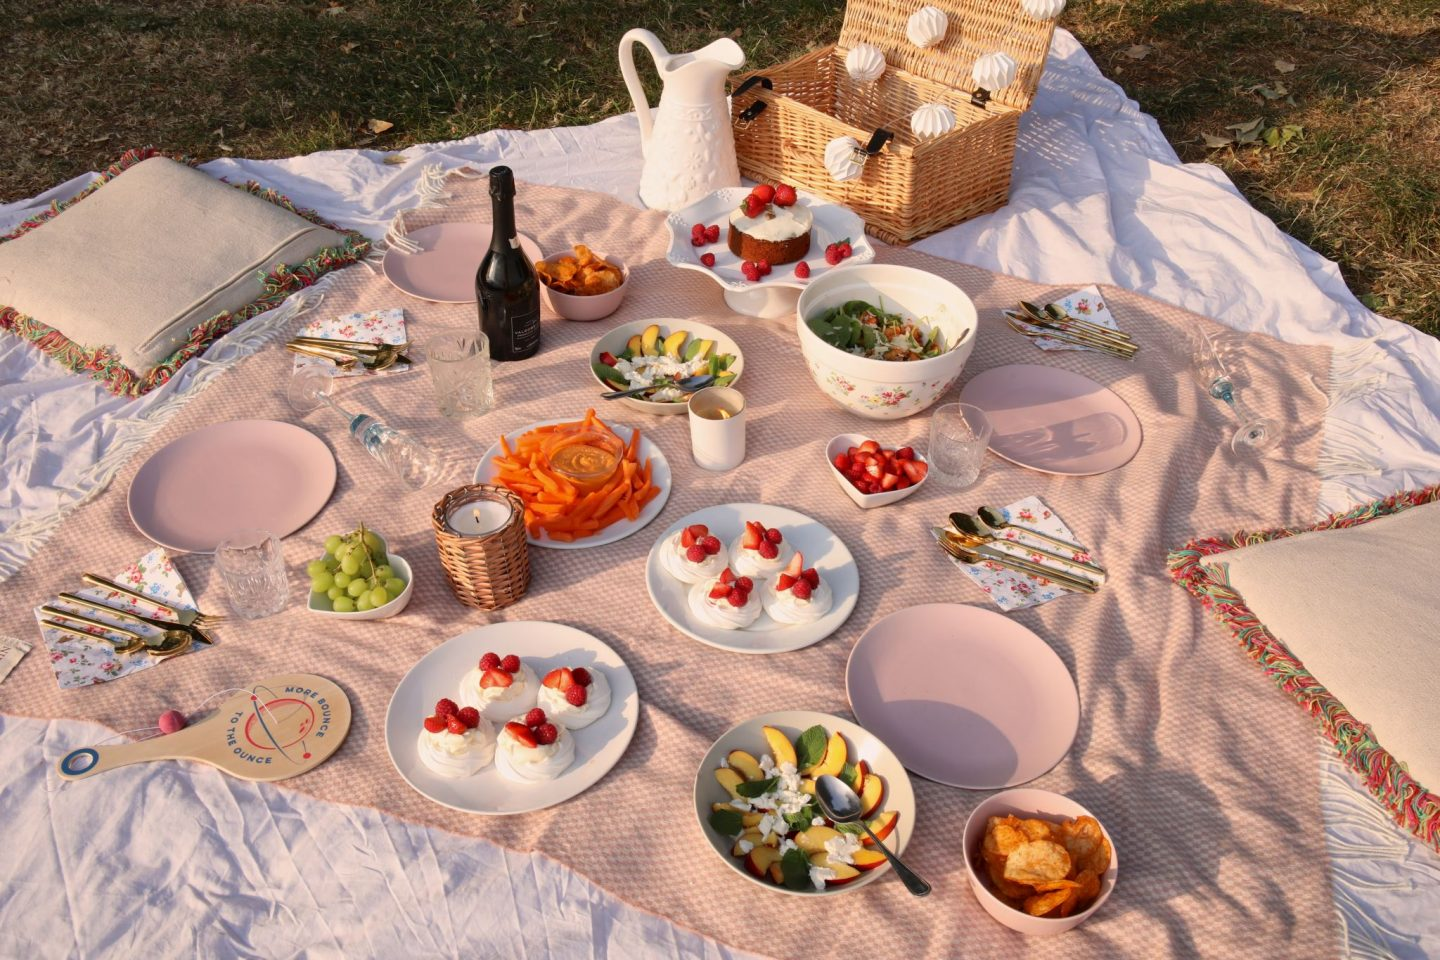 Three delicious summer picnic recipes, Katie KALANCHOE